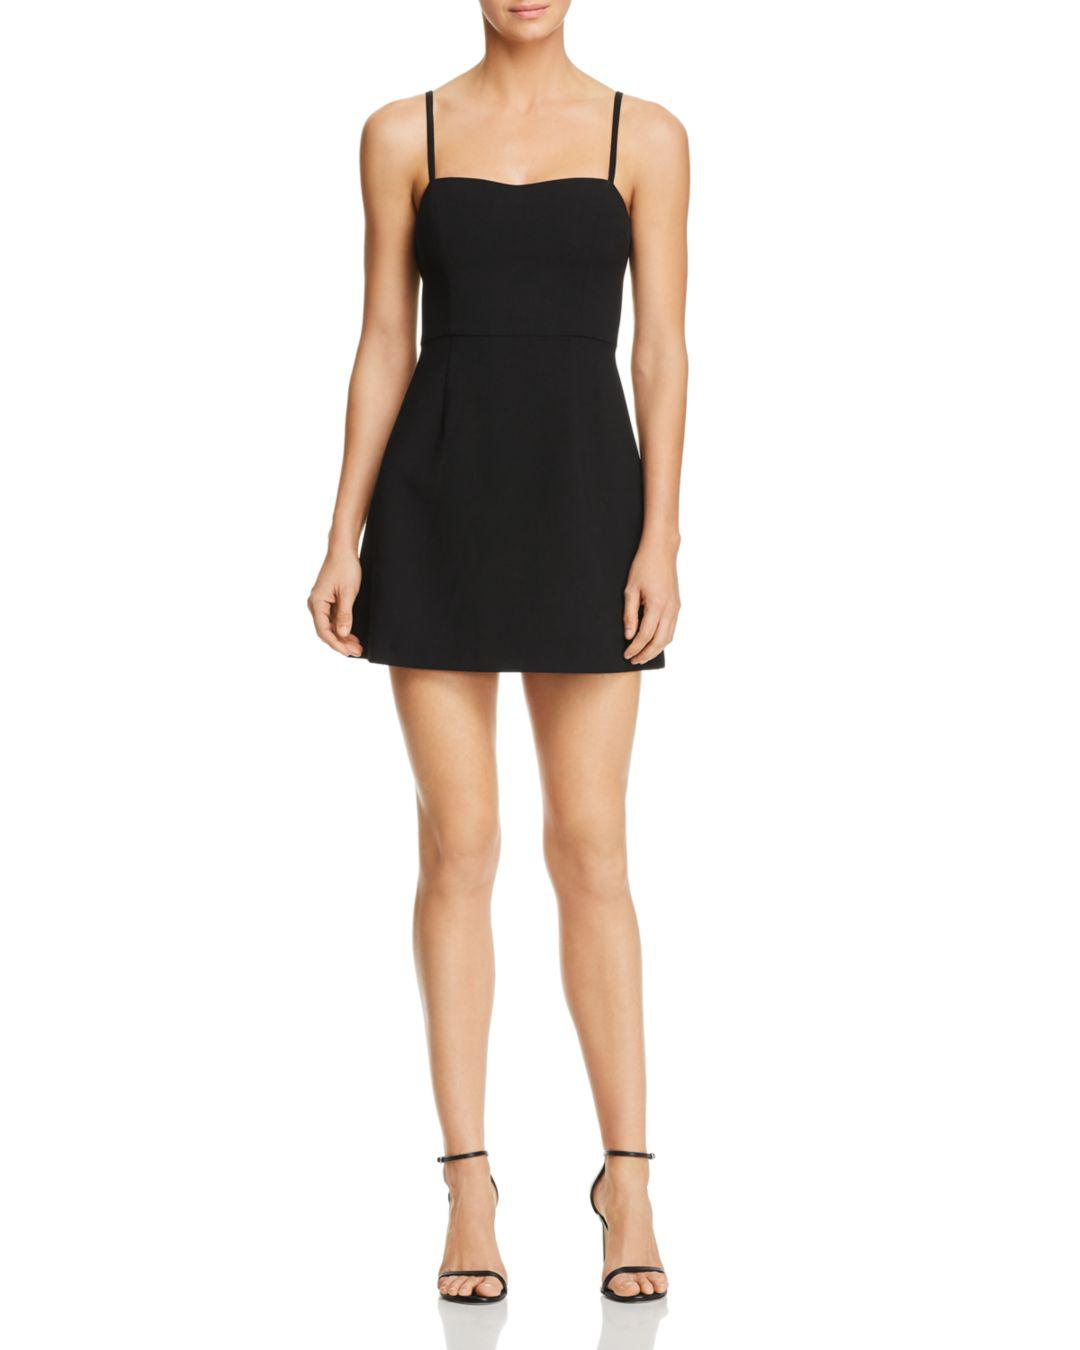 a3be1f25421e French Connection Whisper Light A-line Dress in Black - Lyst